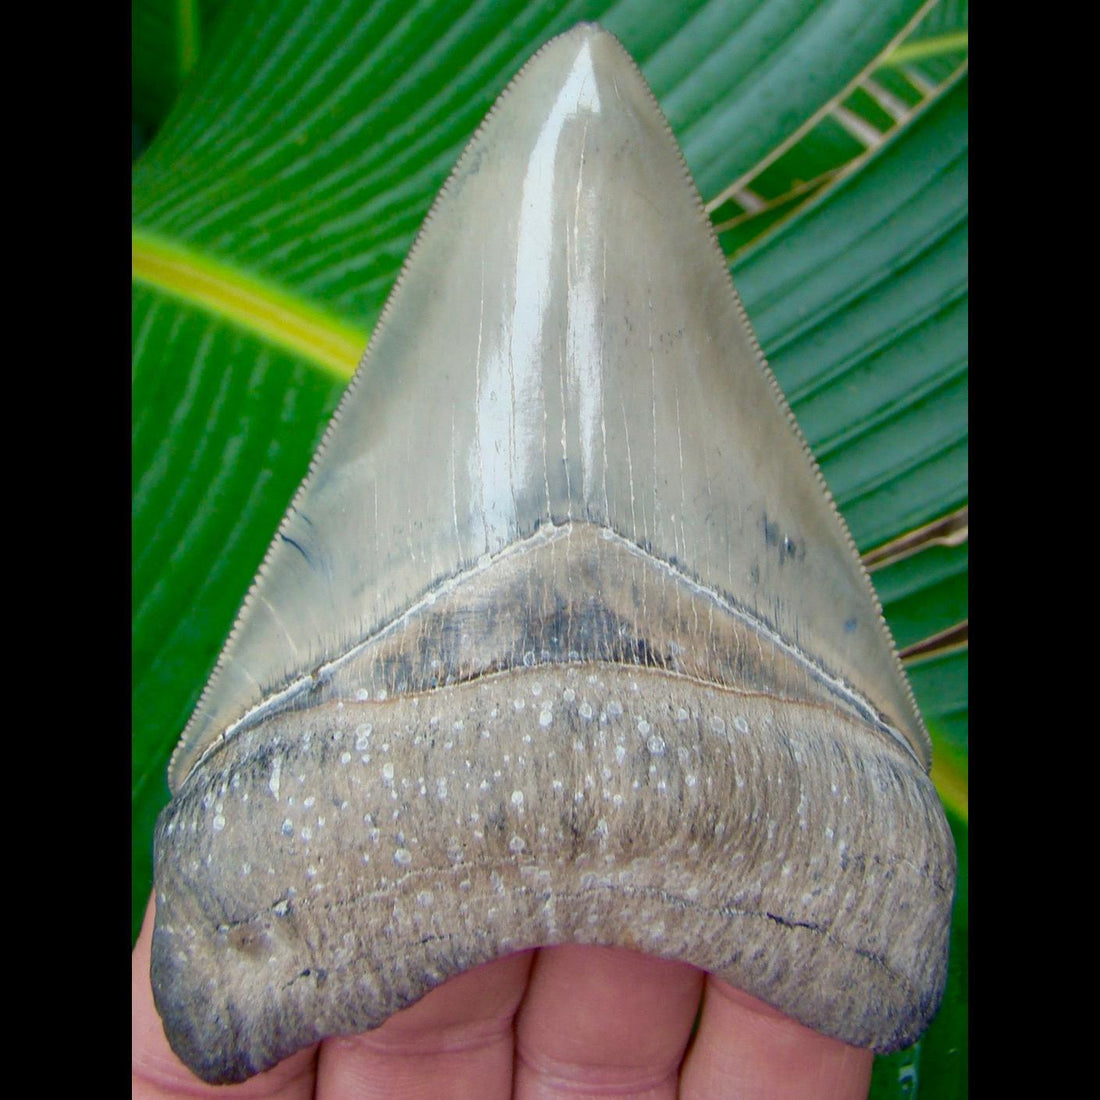 Megalodon Tooth 4 in. Venice Beach, Florida Megalodon Shark Tooth